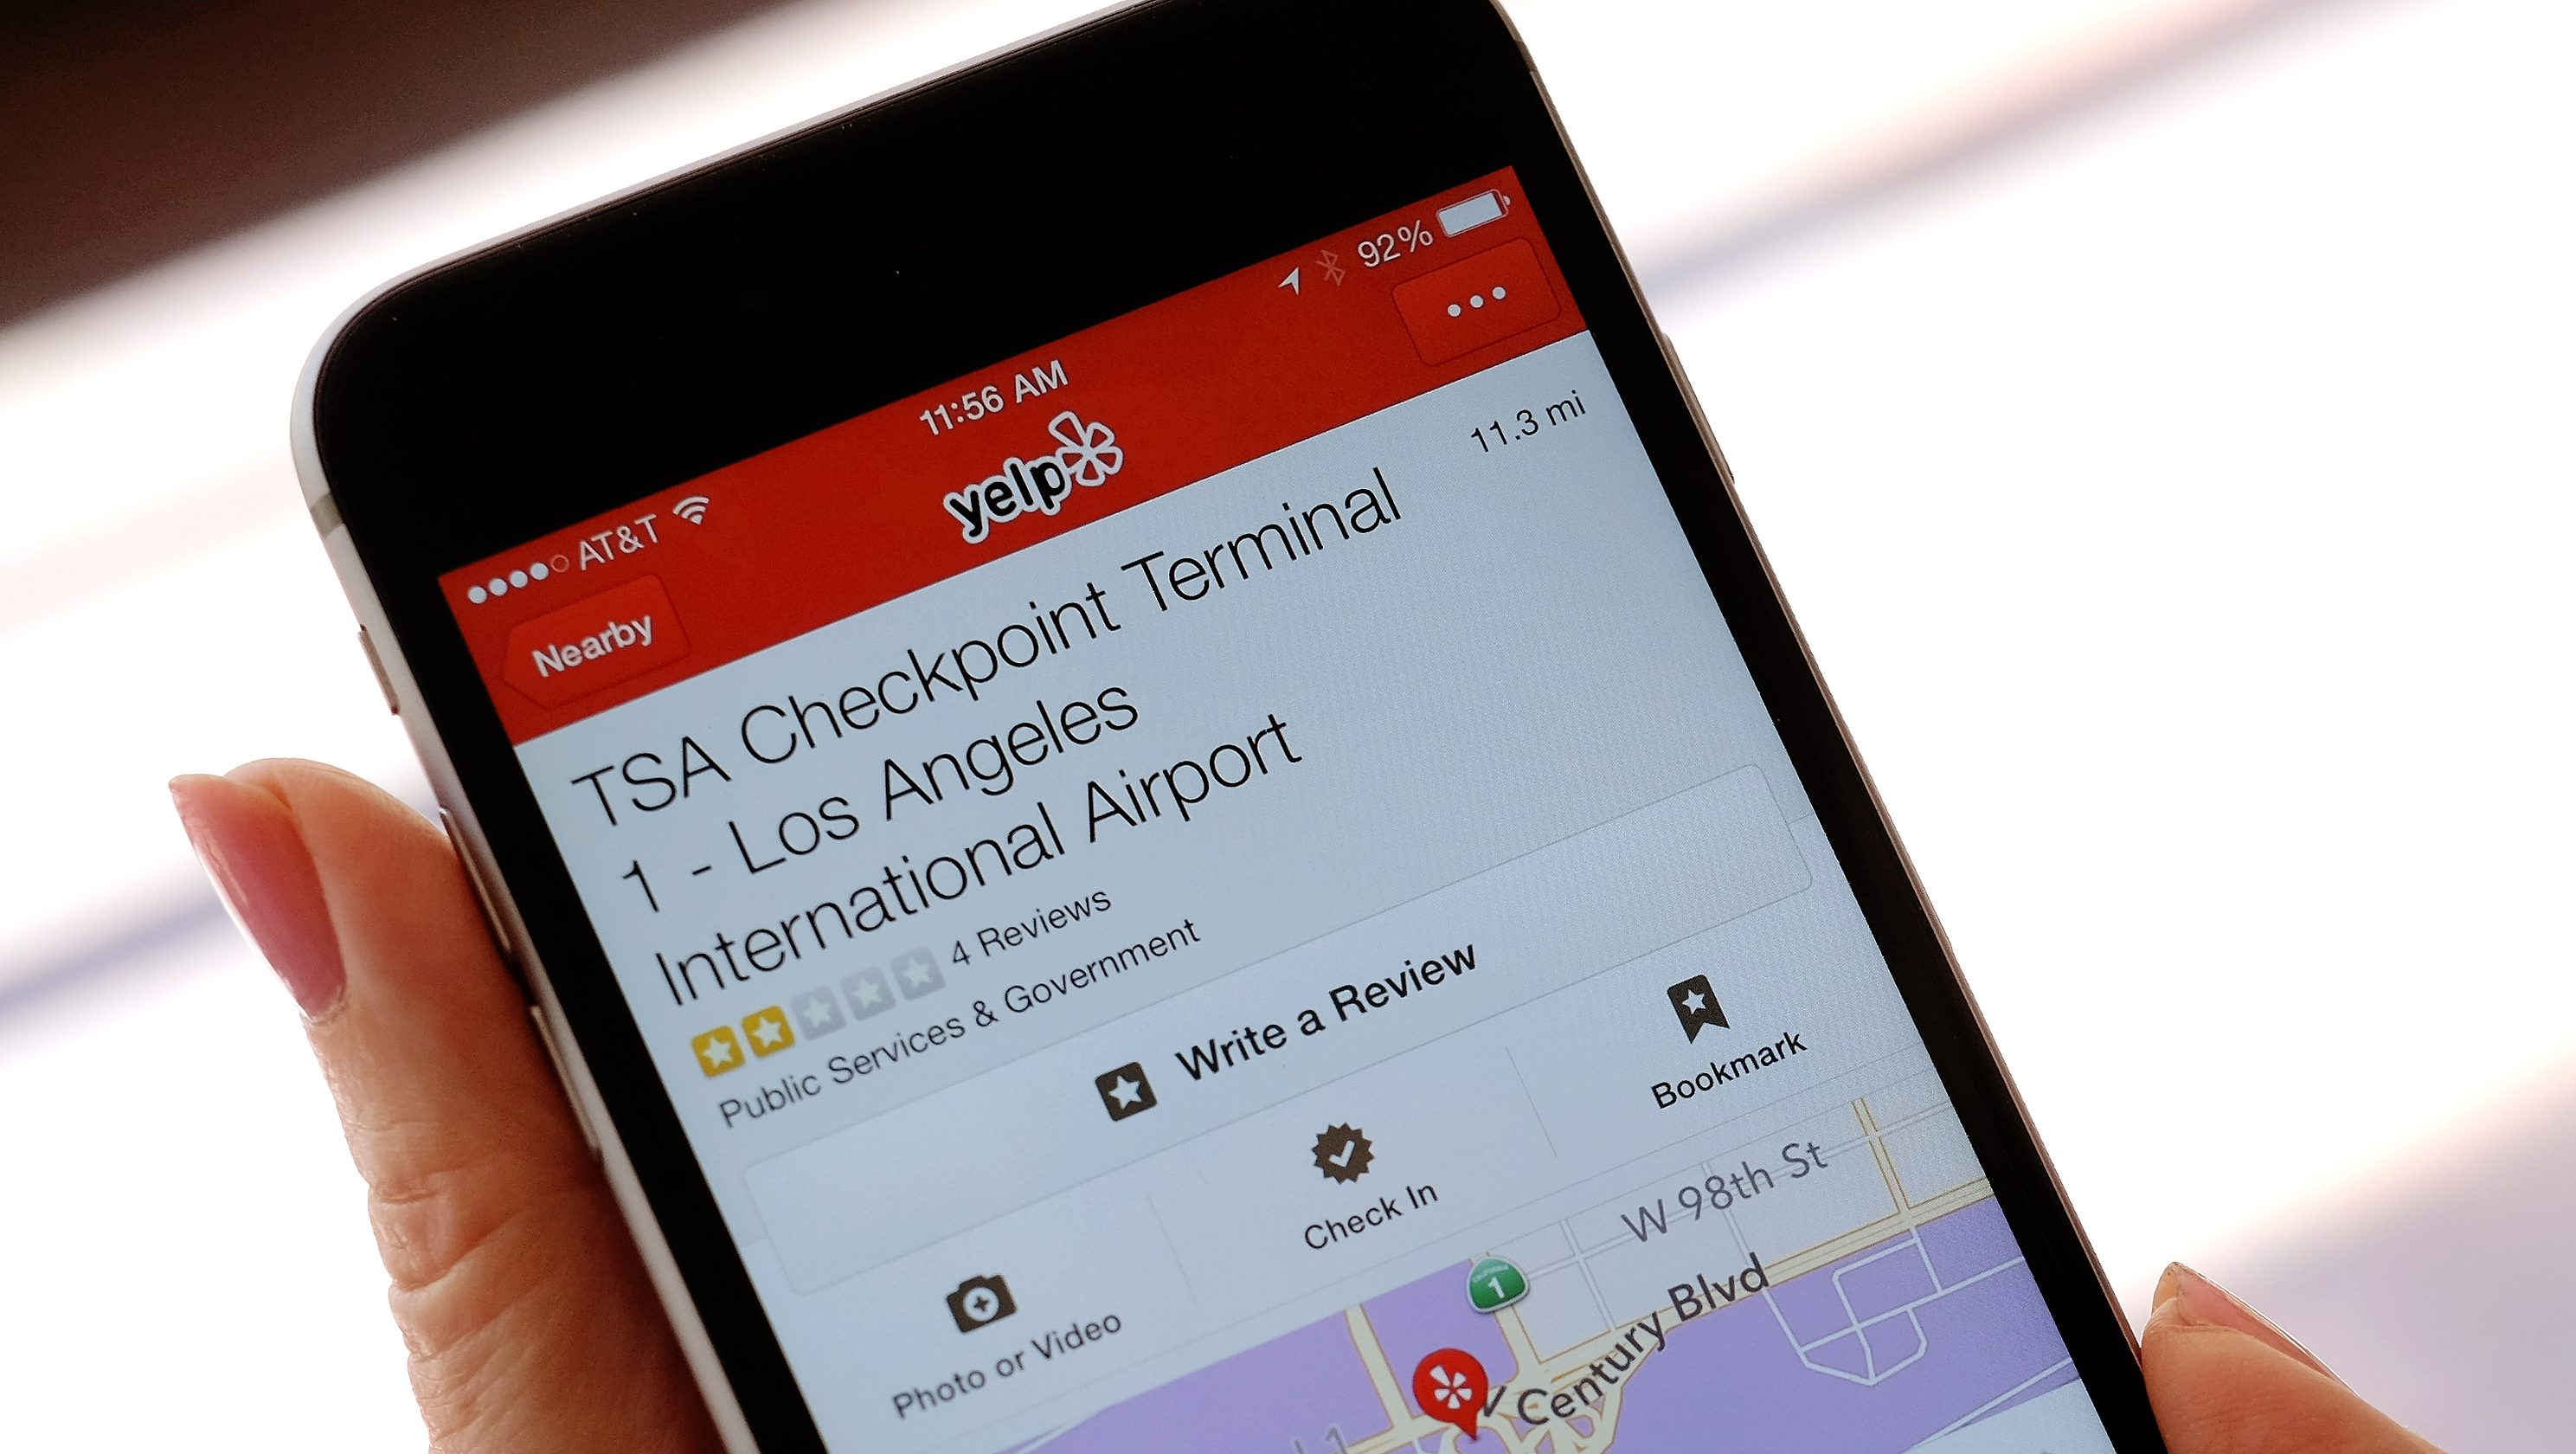 The mobile view of the Yelp site application shown on an iPhone mobile, shows the TSA Checkpoint Terminal 1 at the Los Angeles International Terminal location in Los Angeles on Tuesday, Aug. 18, 2015. Frustrated travelers have already been turning to the popular site for years to vent about the long, slow-moving airport security lines, intrusive body scans and questioning of agents. The General Service Administration unveiled last week that it had reached a deal with Yelp so the public can rate federal agencies, from the Transportation Safety Administration to national parks. (AP Photo/Richard Vogel)